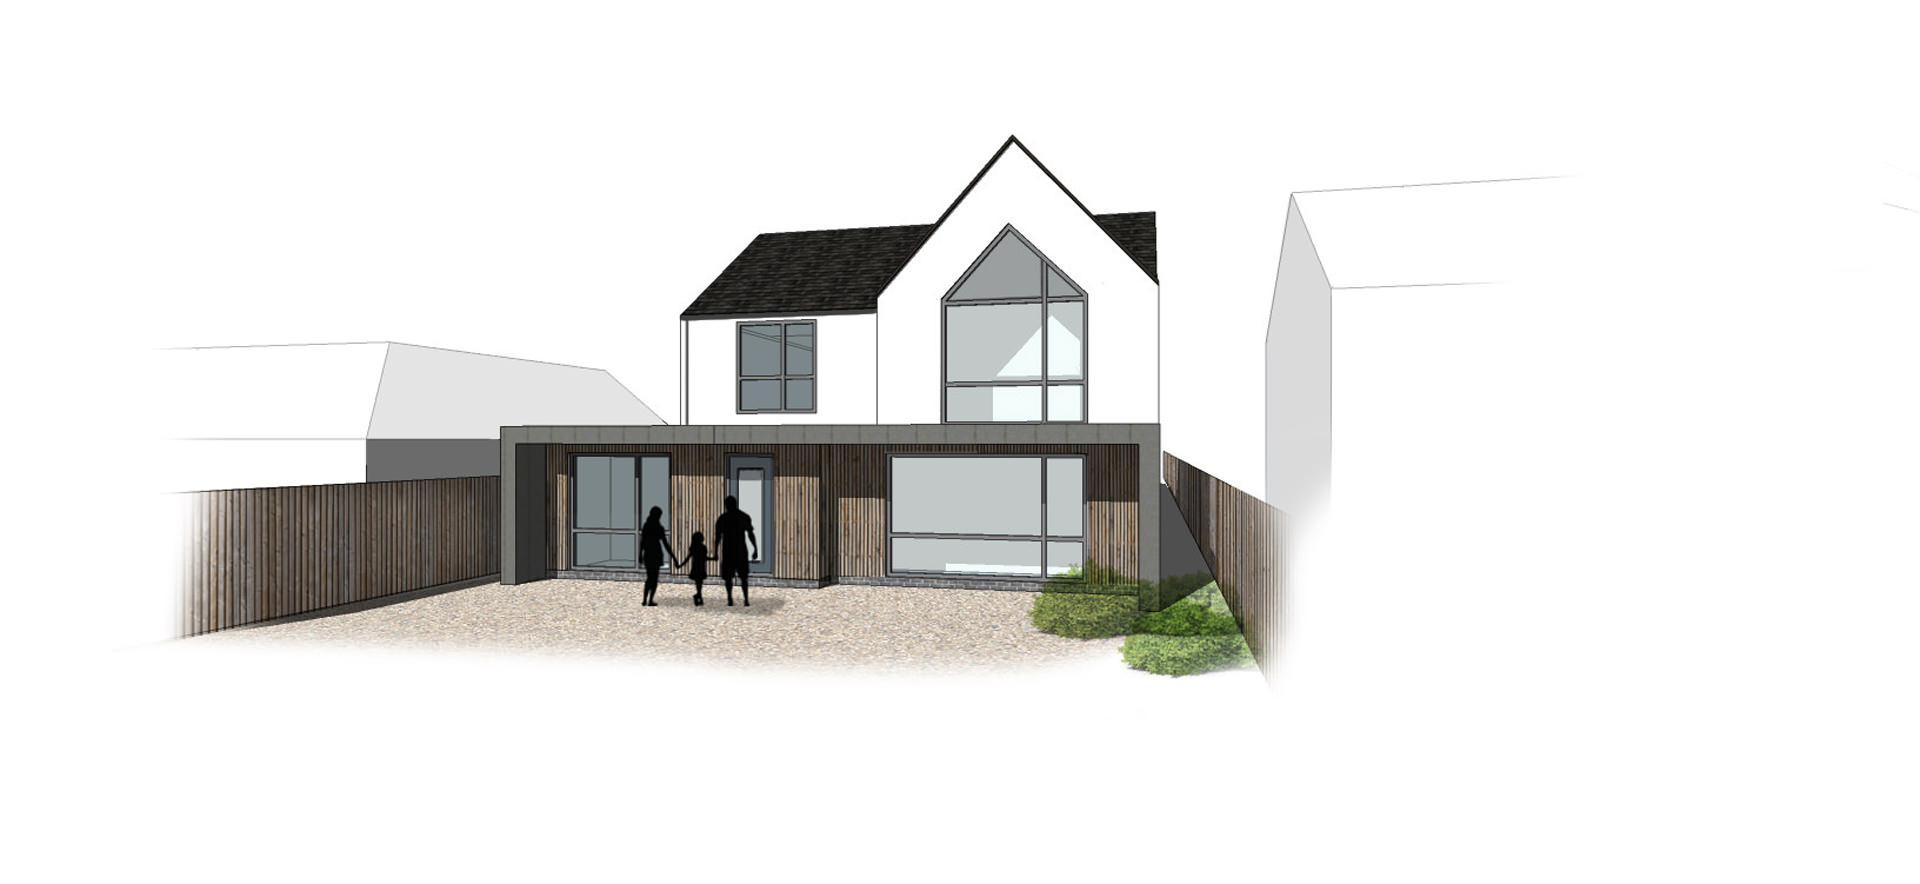 Large single storey contemporary rear extension on a challenging narrower plot. The design features courtyard lightwells and interconnected family spaces in Bedfordshire